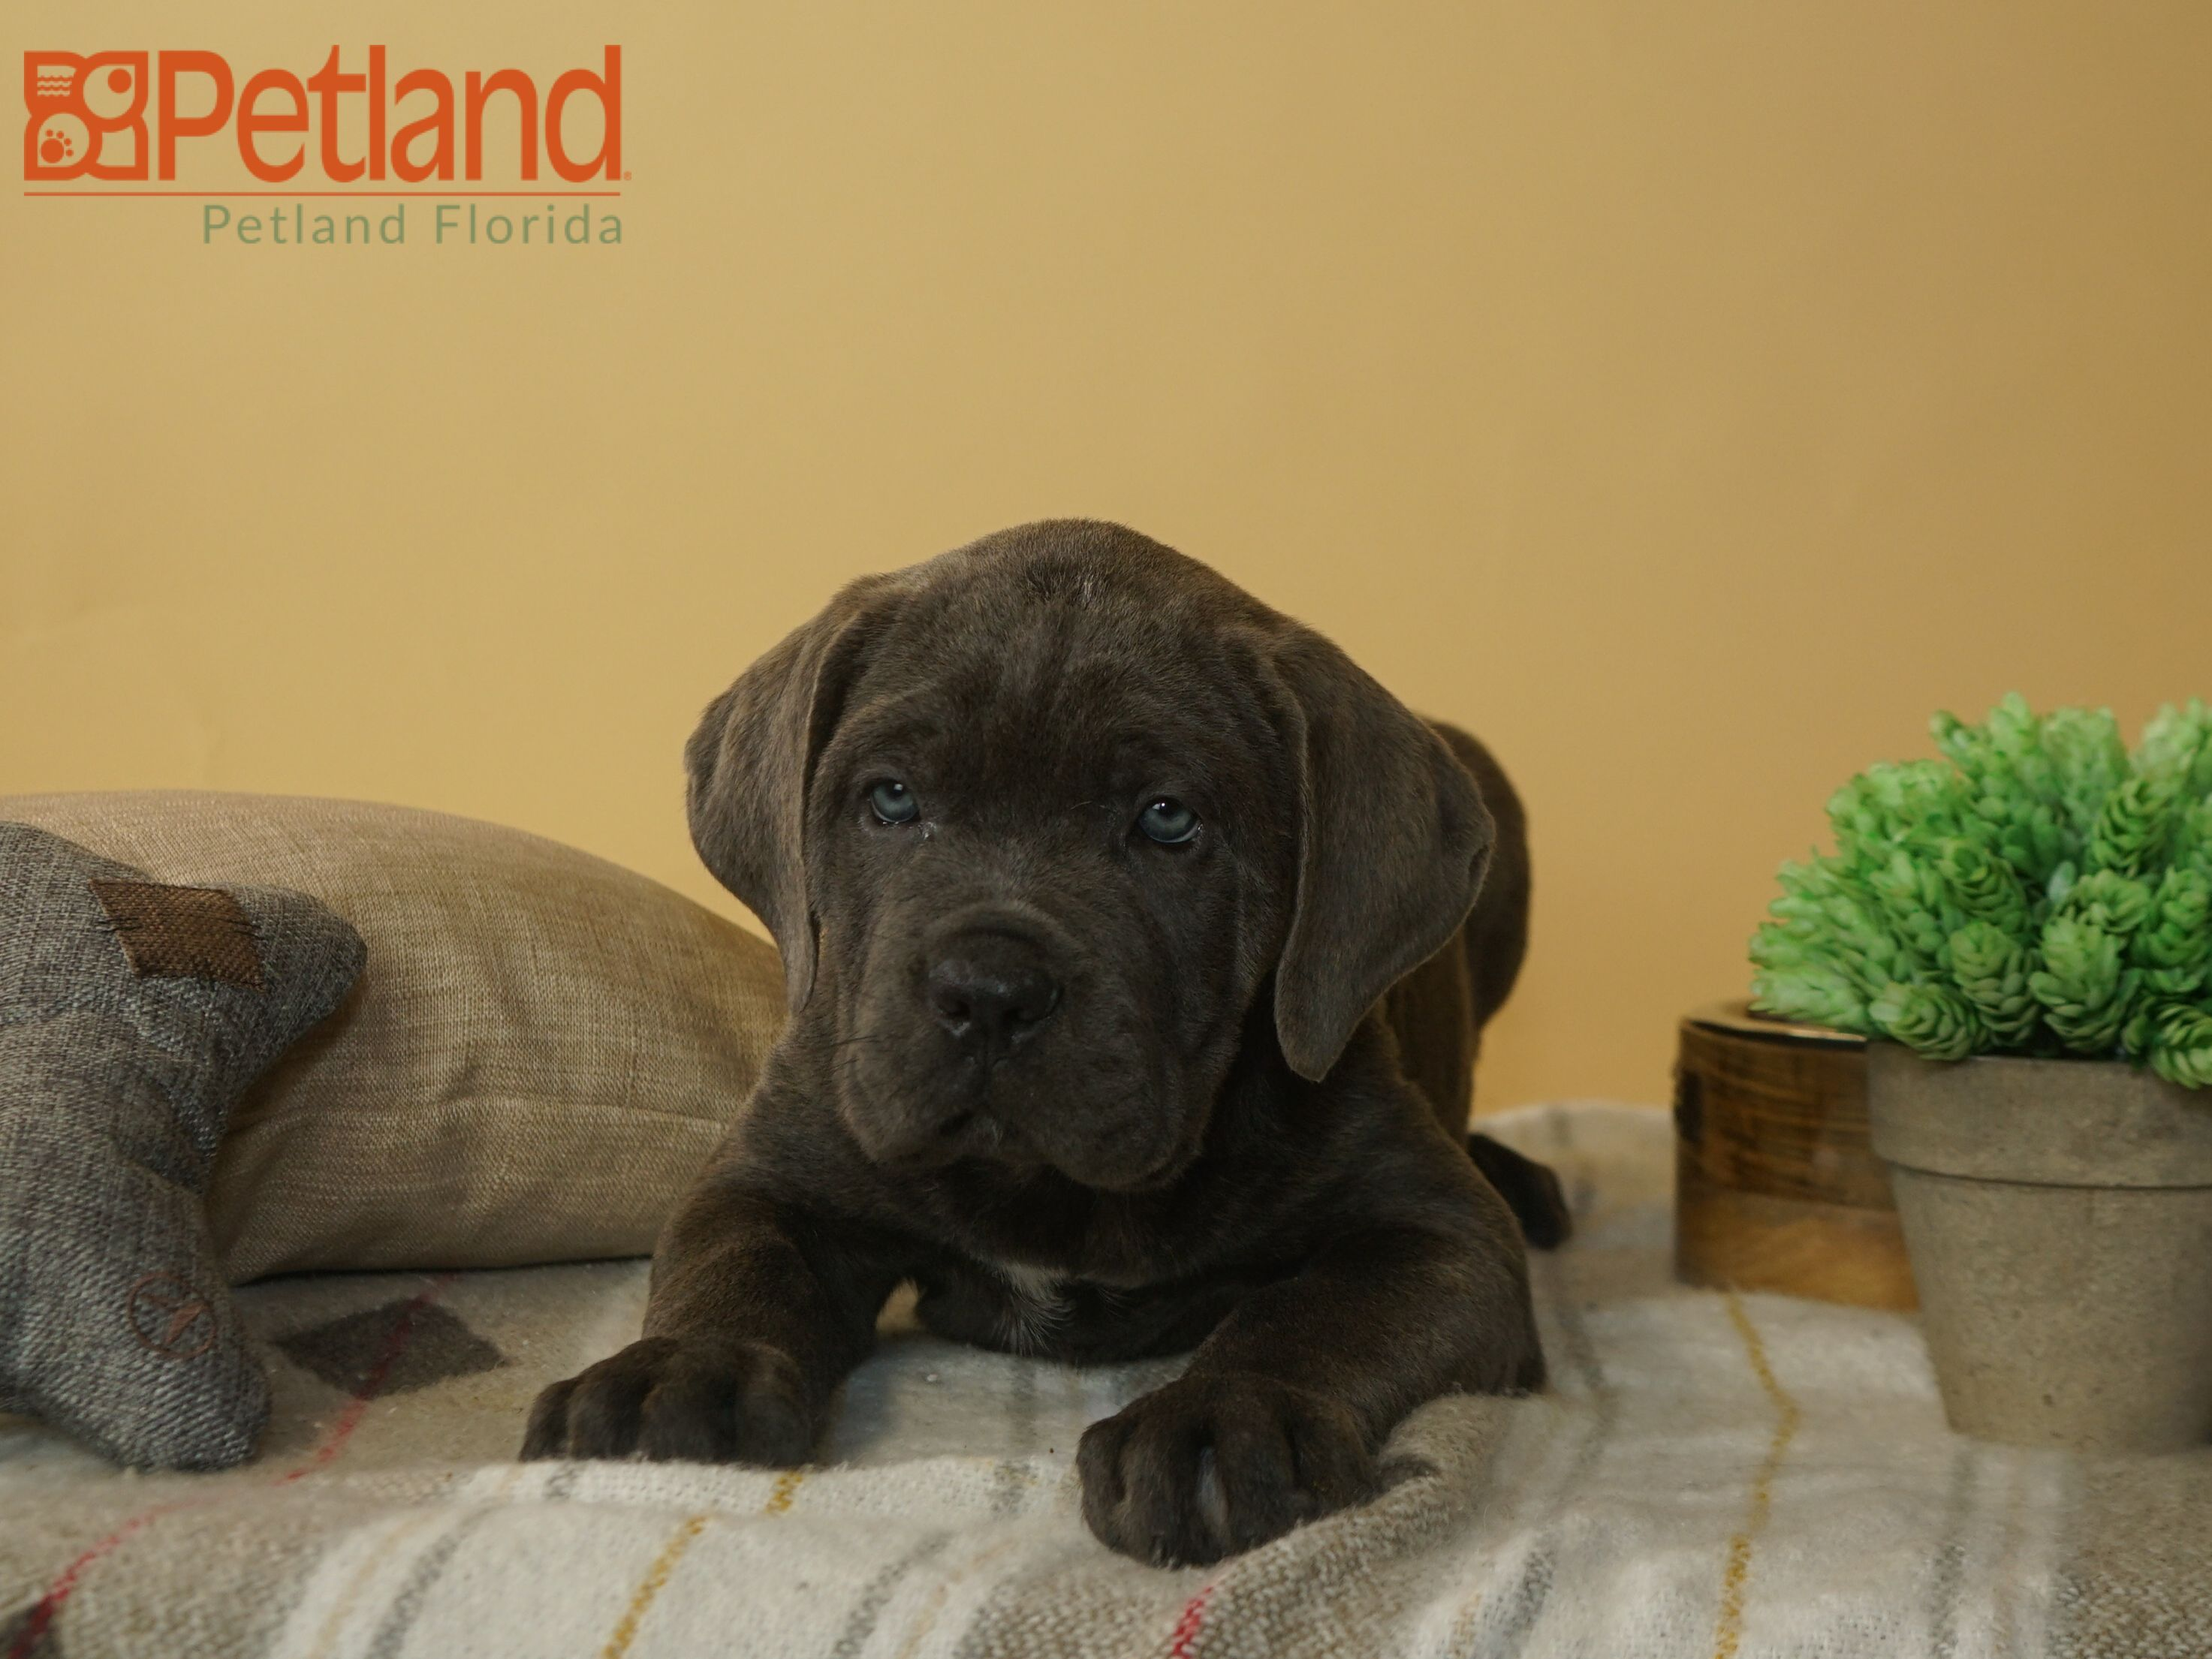 The key to happiness is a Cane Corso puppy. Find your